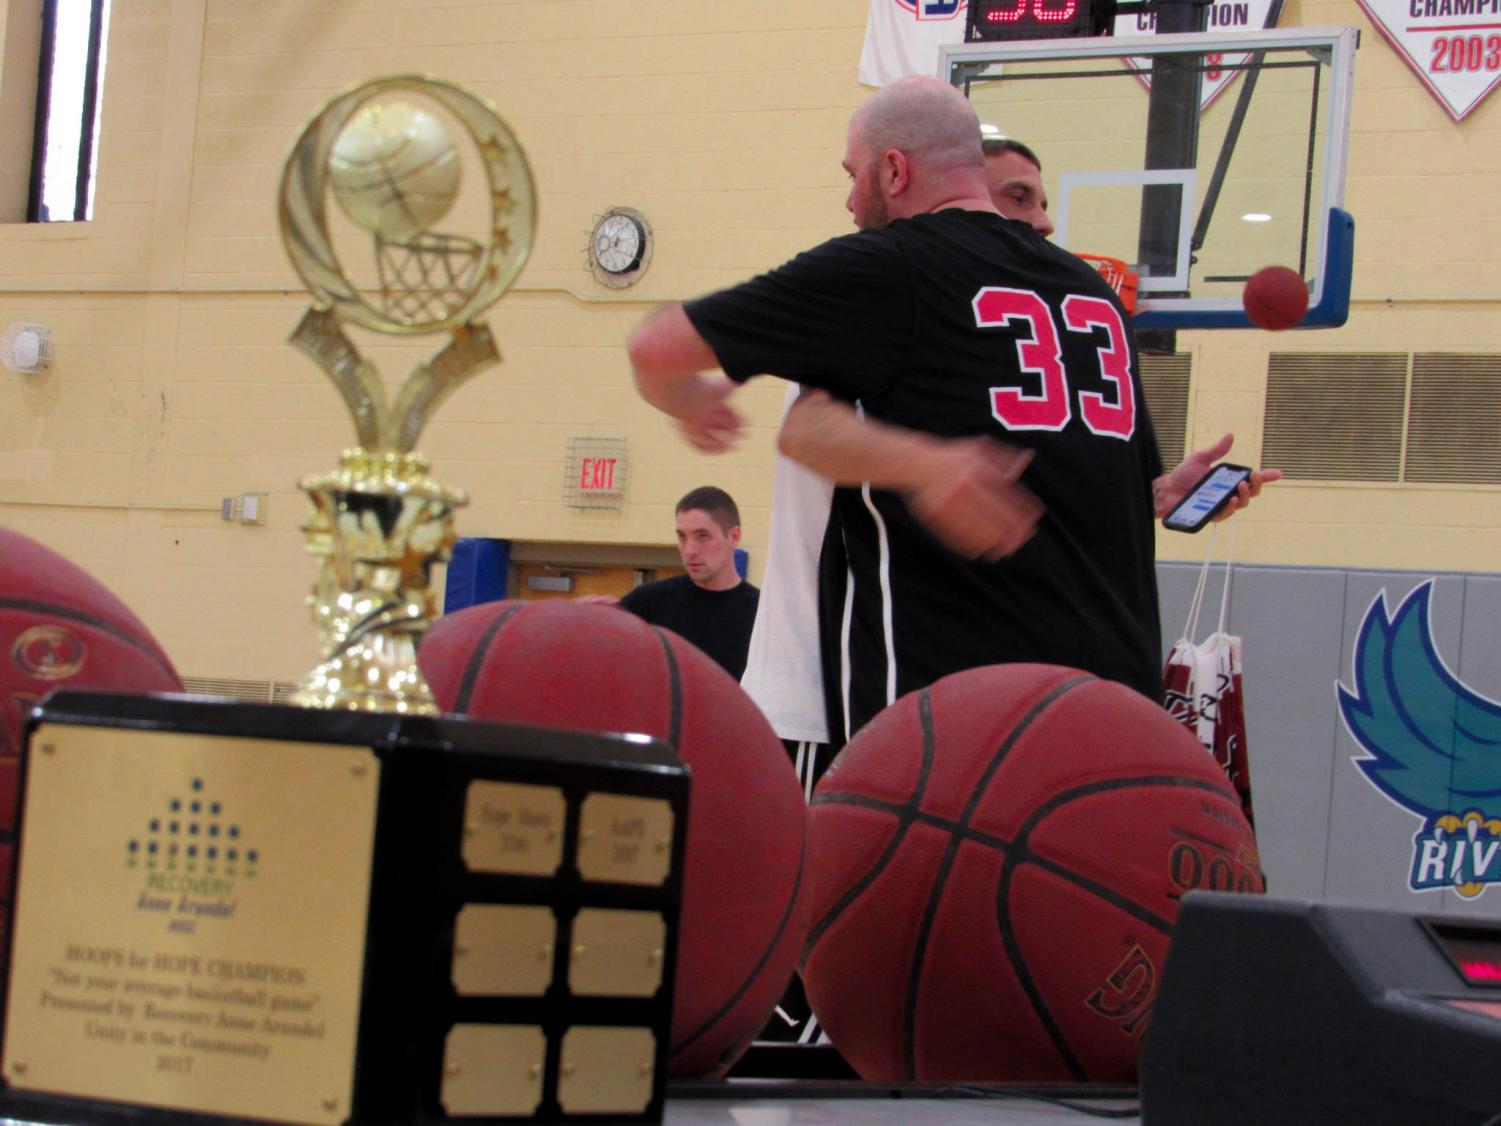 Hoops for Hope is an annual charity basketball event to support individuals and families in recovery.